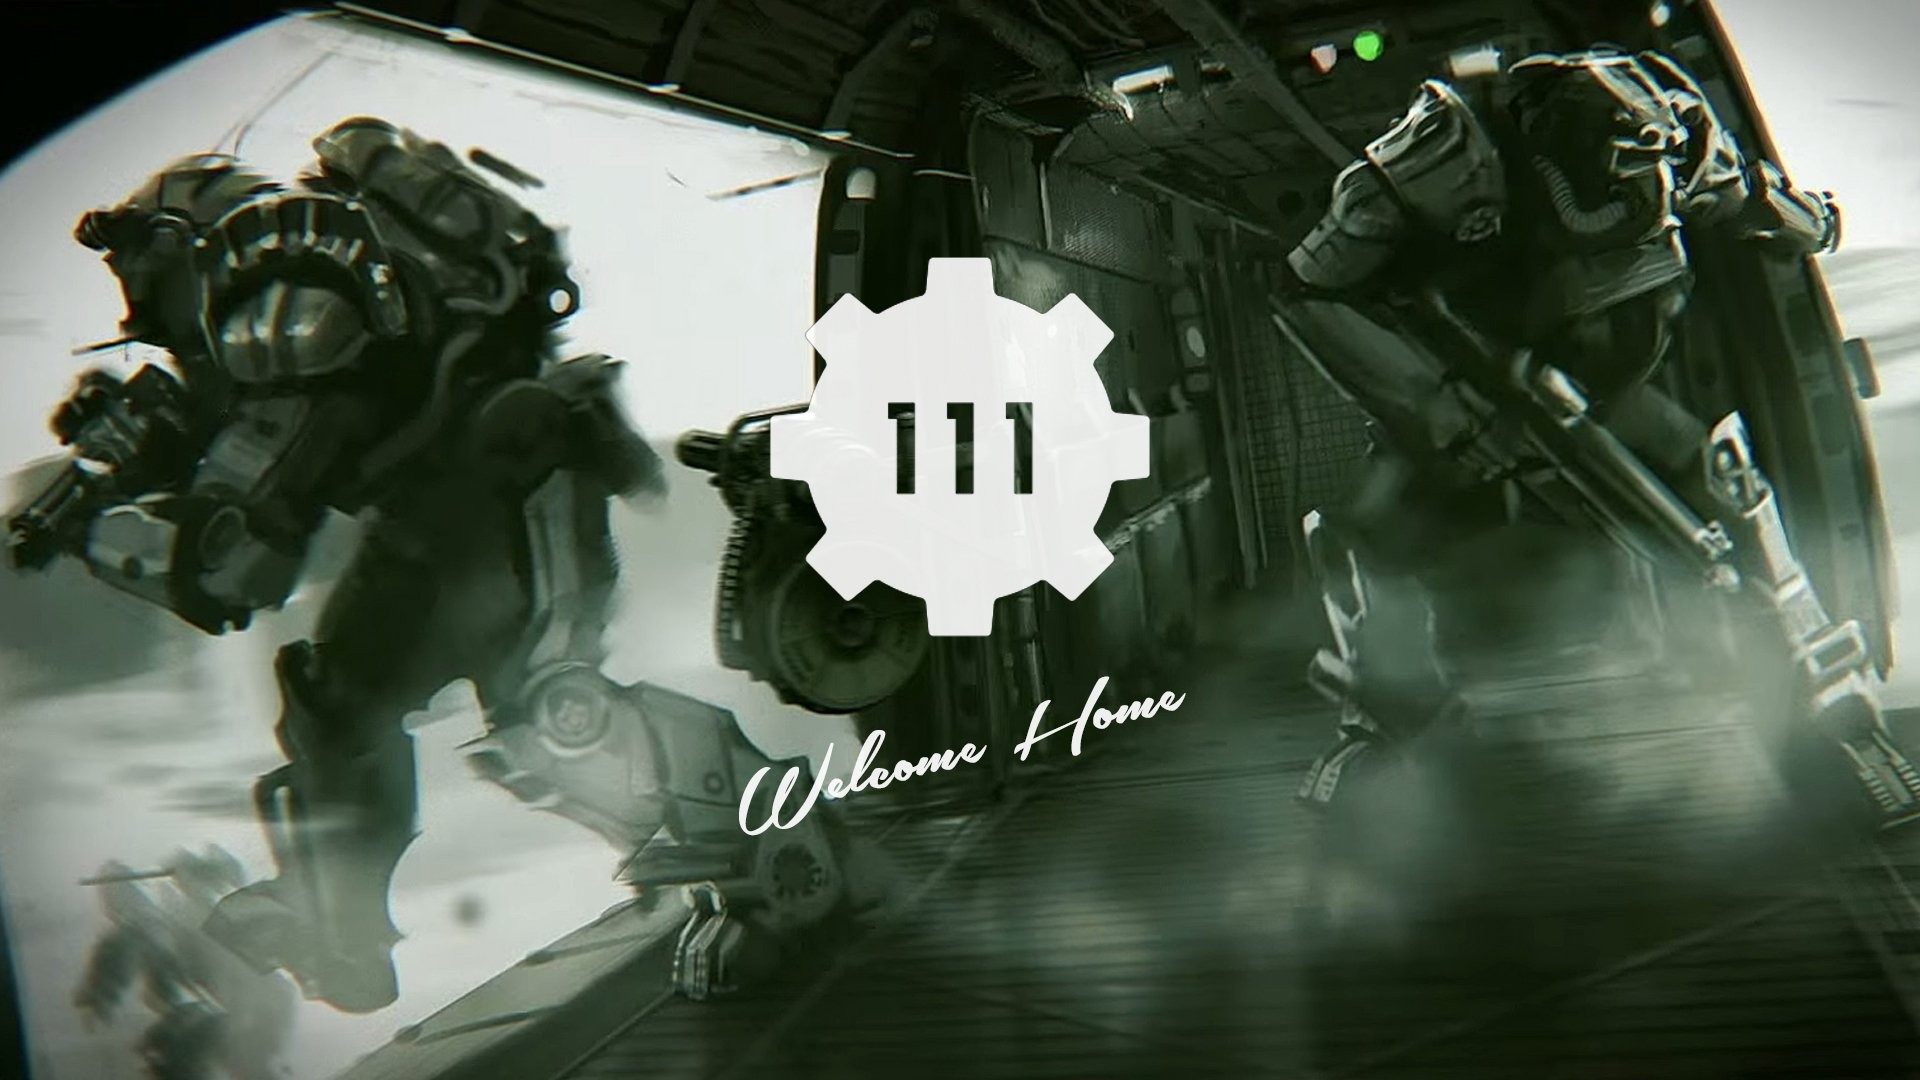 Fall Out Boy Symbol Wallpaper Fallout 4 Power Armor Wallpaper 183 ① Download Free Cool High